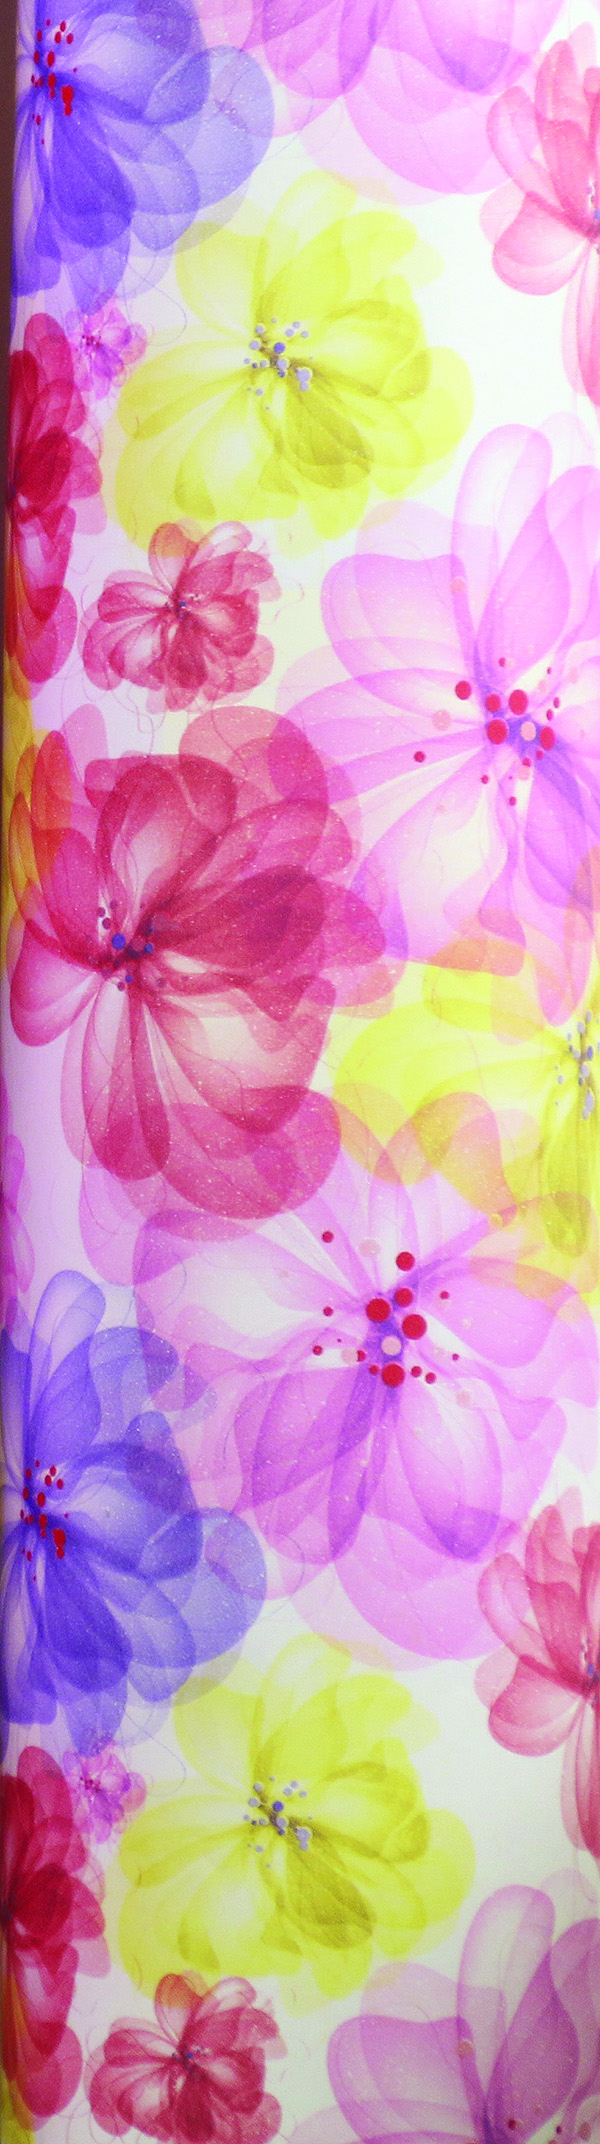 PA858 Jewelers Roll Giftwrap- Spring Beauty